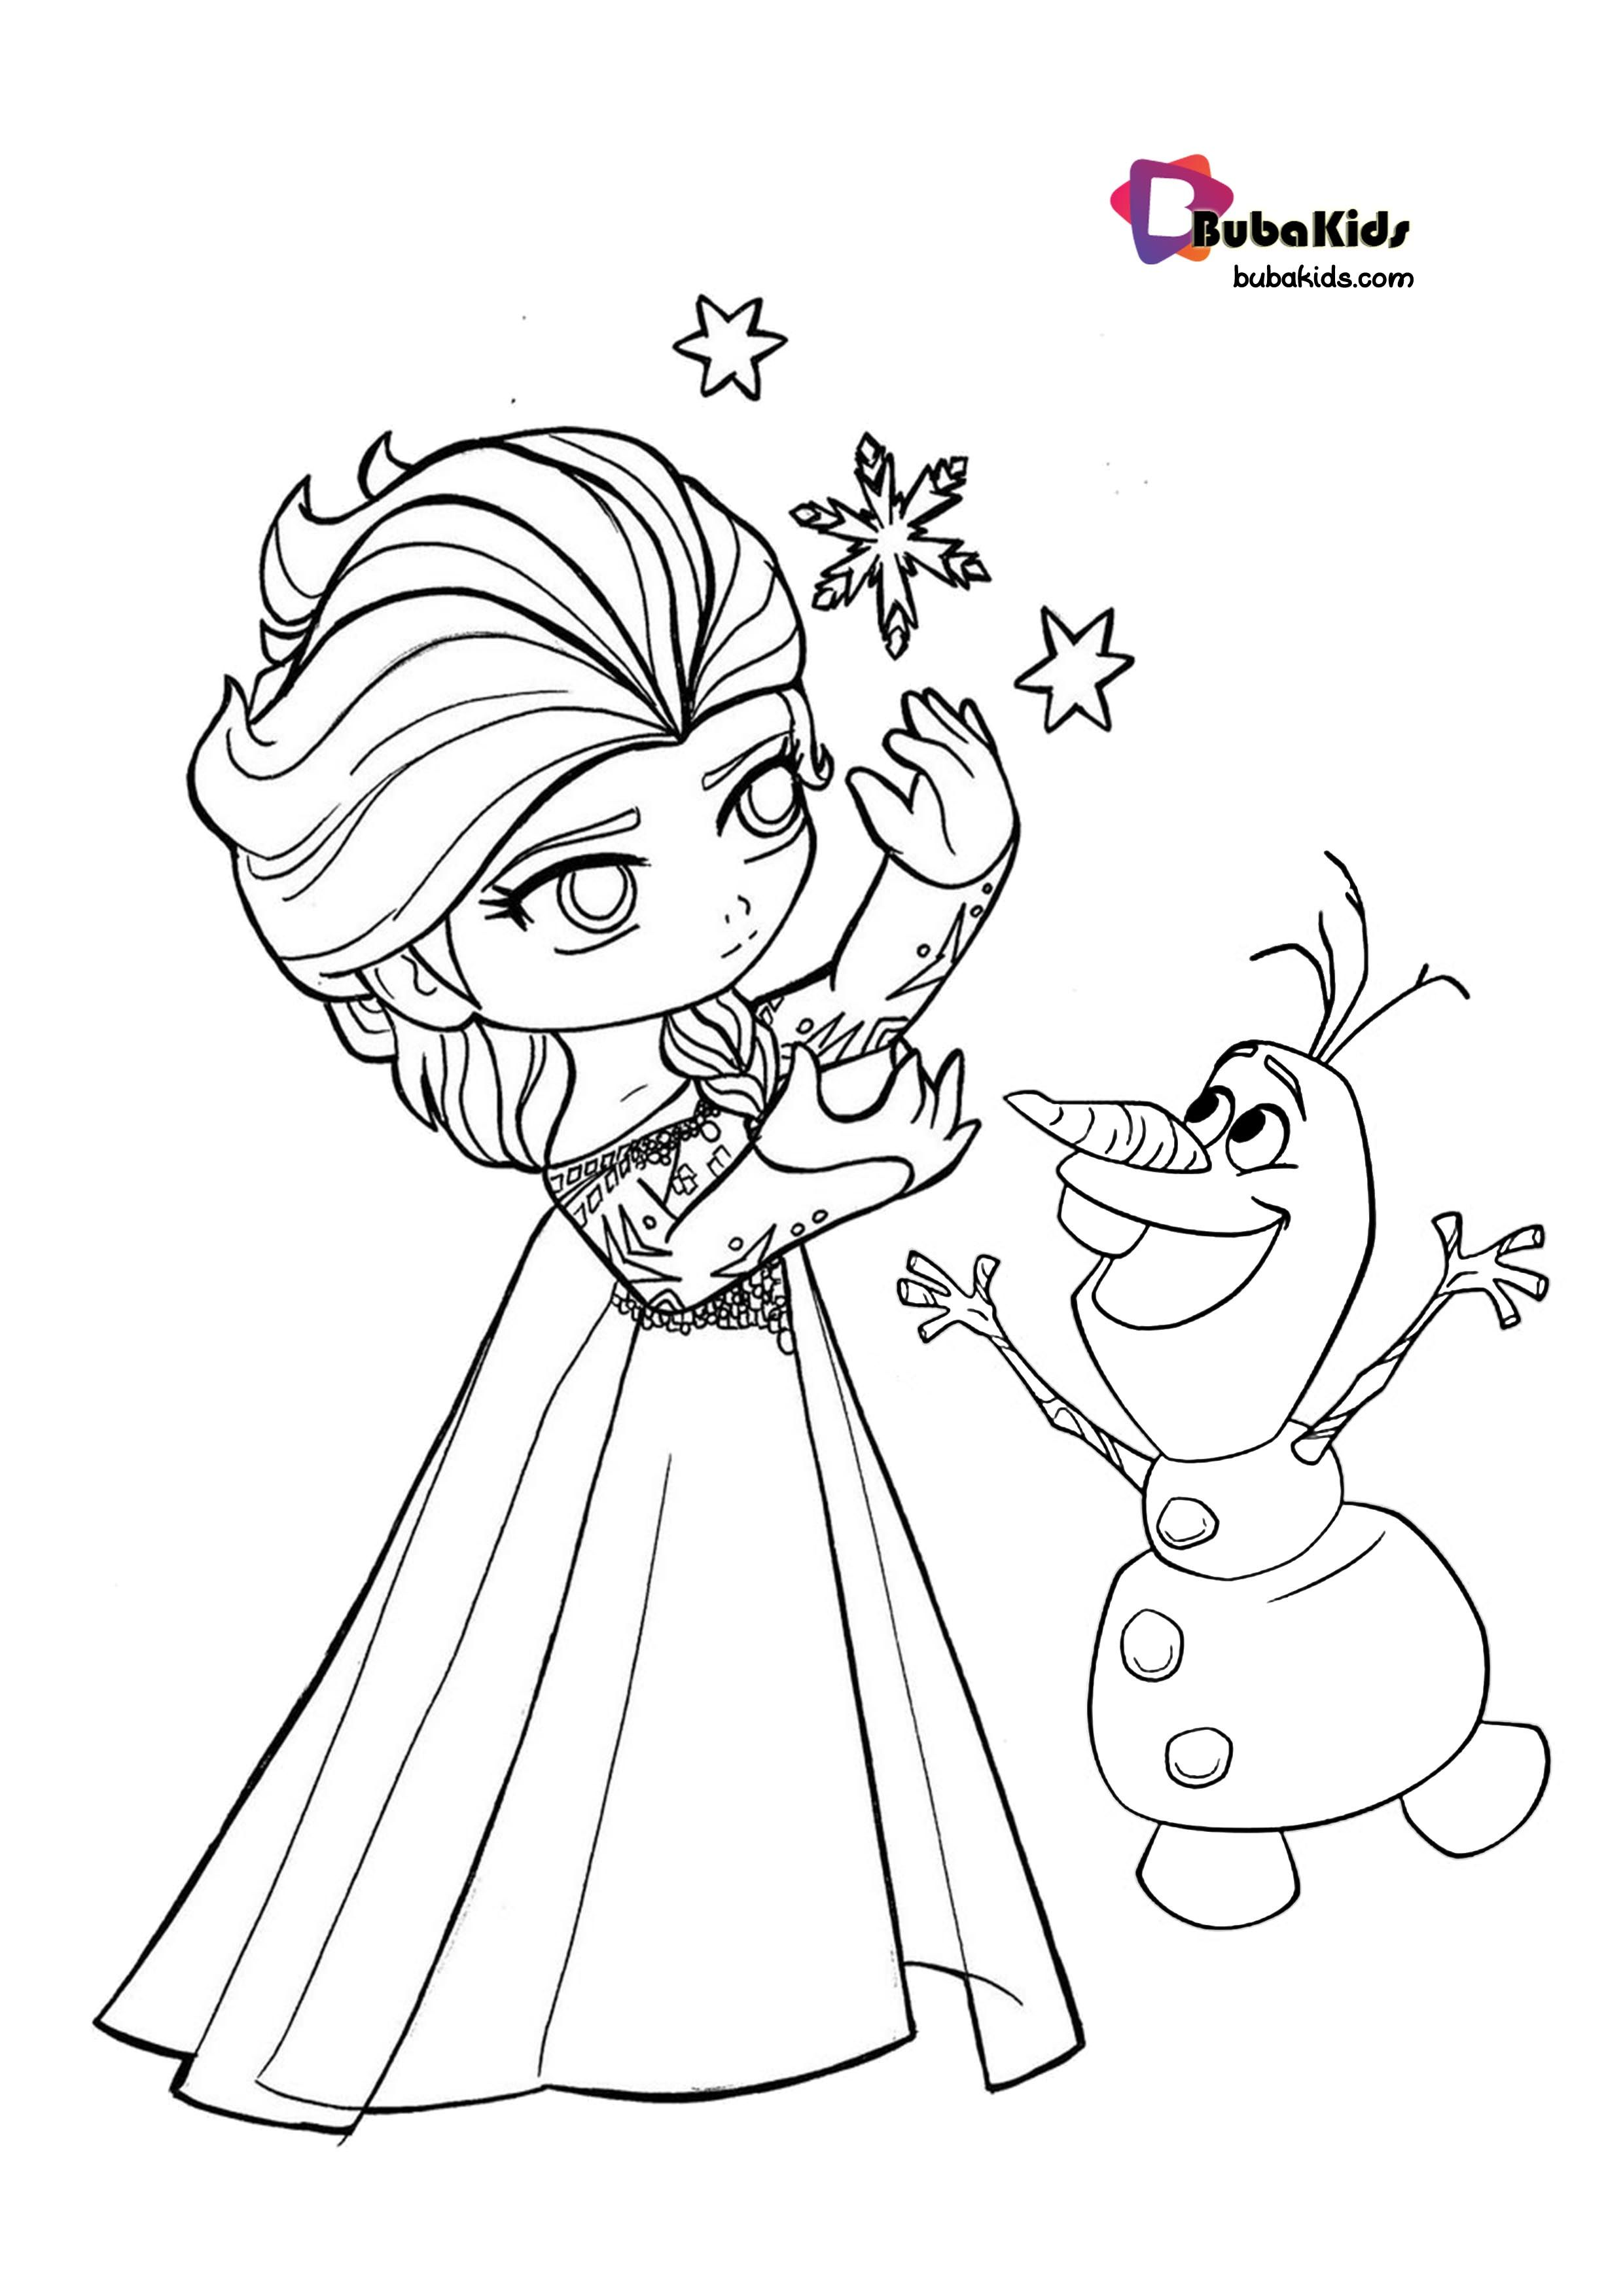 Bubakids Little Princess Anna Coloring Page Anna Coloringpage Disneyprincess Littleprincess A Anna Coloring Pages Anna Coloring Page Cartoon Coloring Pages